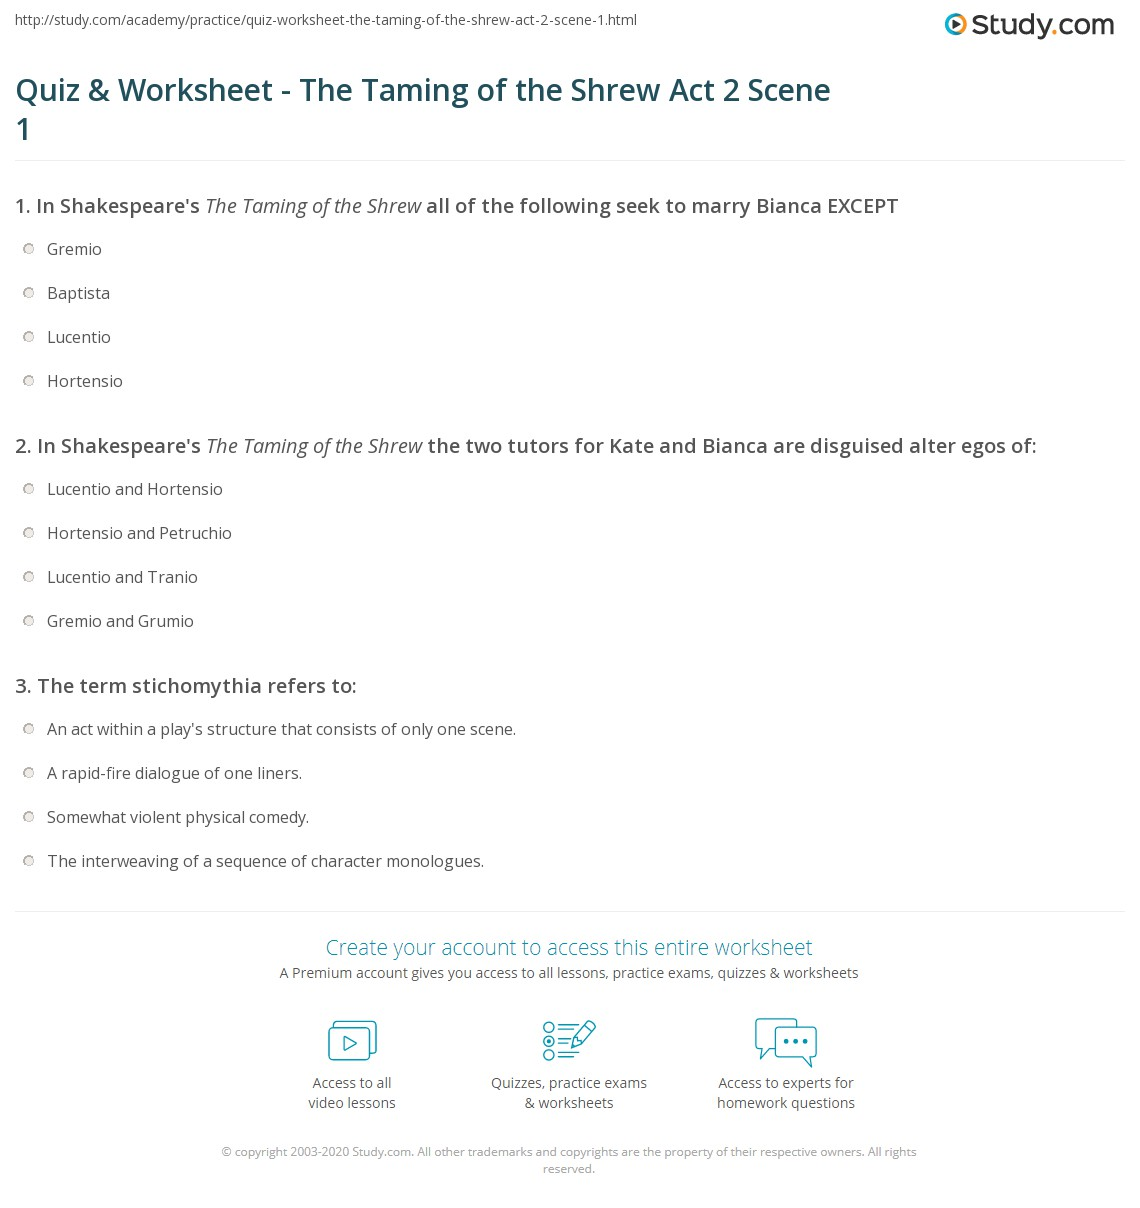 quiz worksheet the taming of the shrew act scene com print the taming of the shrew summary act 2 scene 1 worksheet